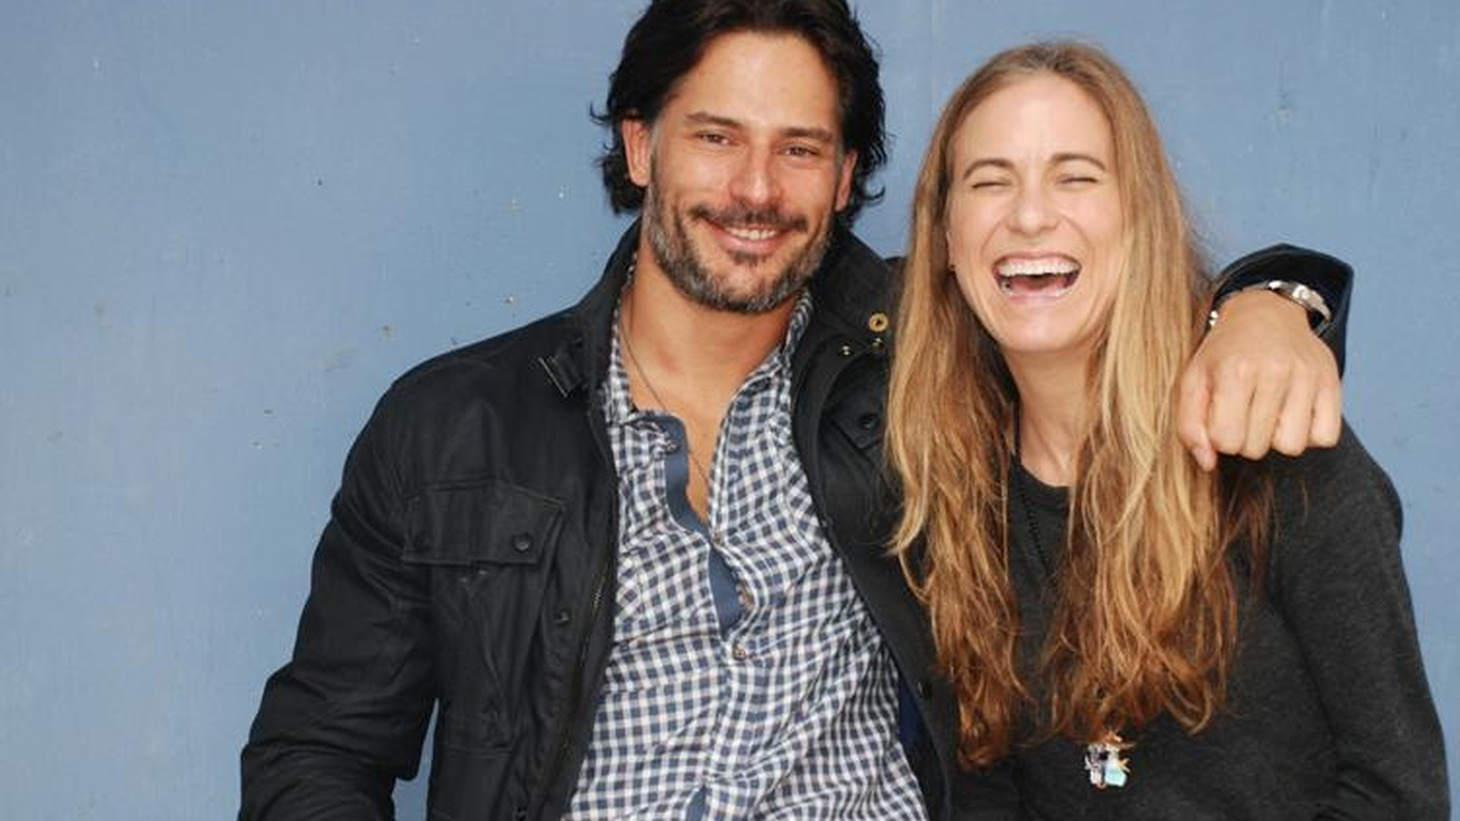 Actor Joe Manganiello plays Alcide the werewolf on True Blood and exposes himself as a hopeless romantic with a love-themed guest DJ set. He also dedicates a couple songs to his favorite musician – and friend – DJ Z-Trip and tells us how music brought him back to his creative self when he lost his way.